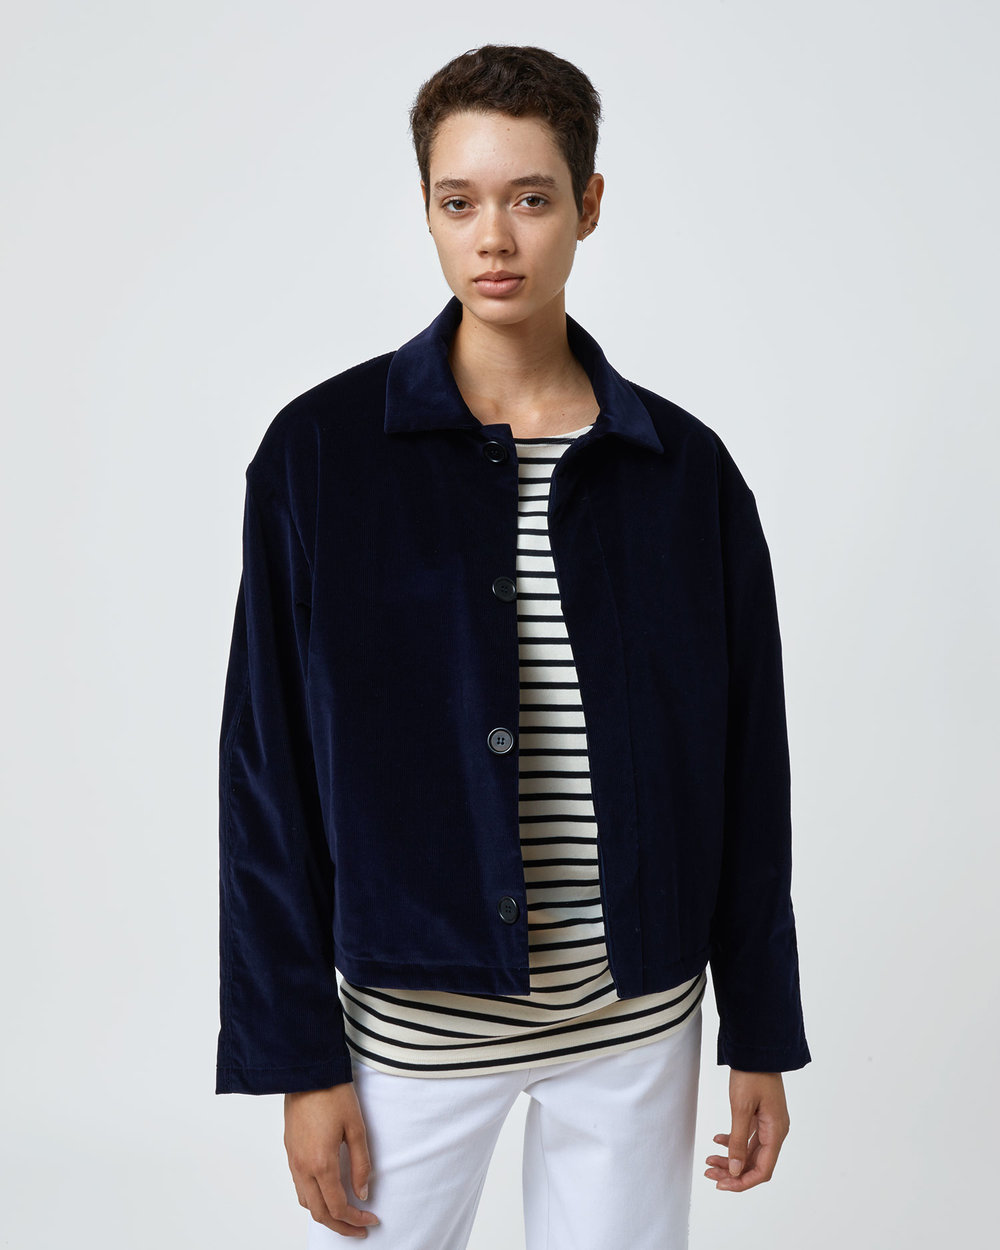 Shop Corduroy Jacket in Navy by One DNA